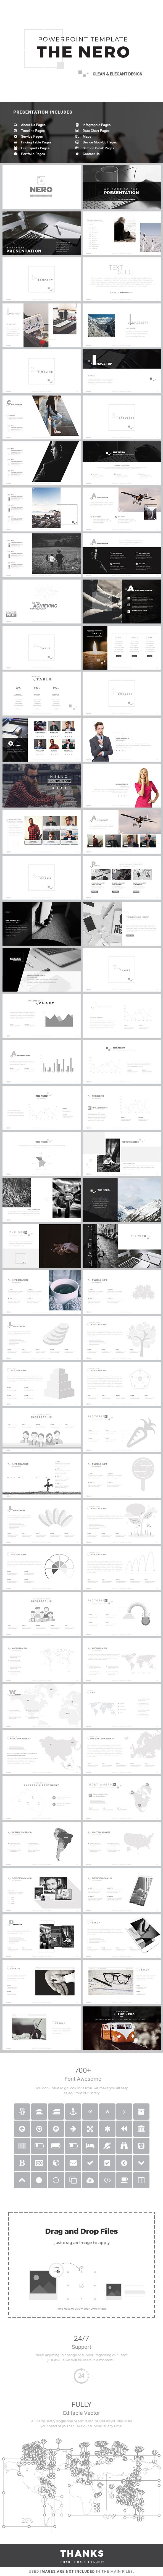 Loved it. Simple, clean and useful. NERO - #PowerPointTemplate - PowerPoint Templates Presentation Templates | Download https://graphicriver.net/item/powerpoint-presentation-template/17308699?ref=themedevisers